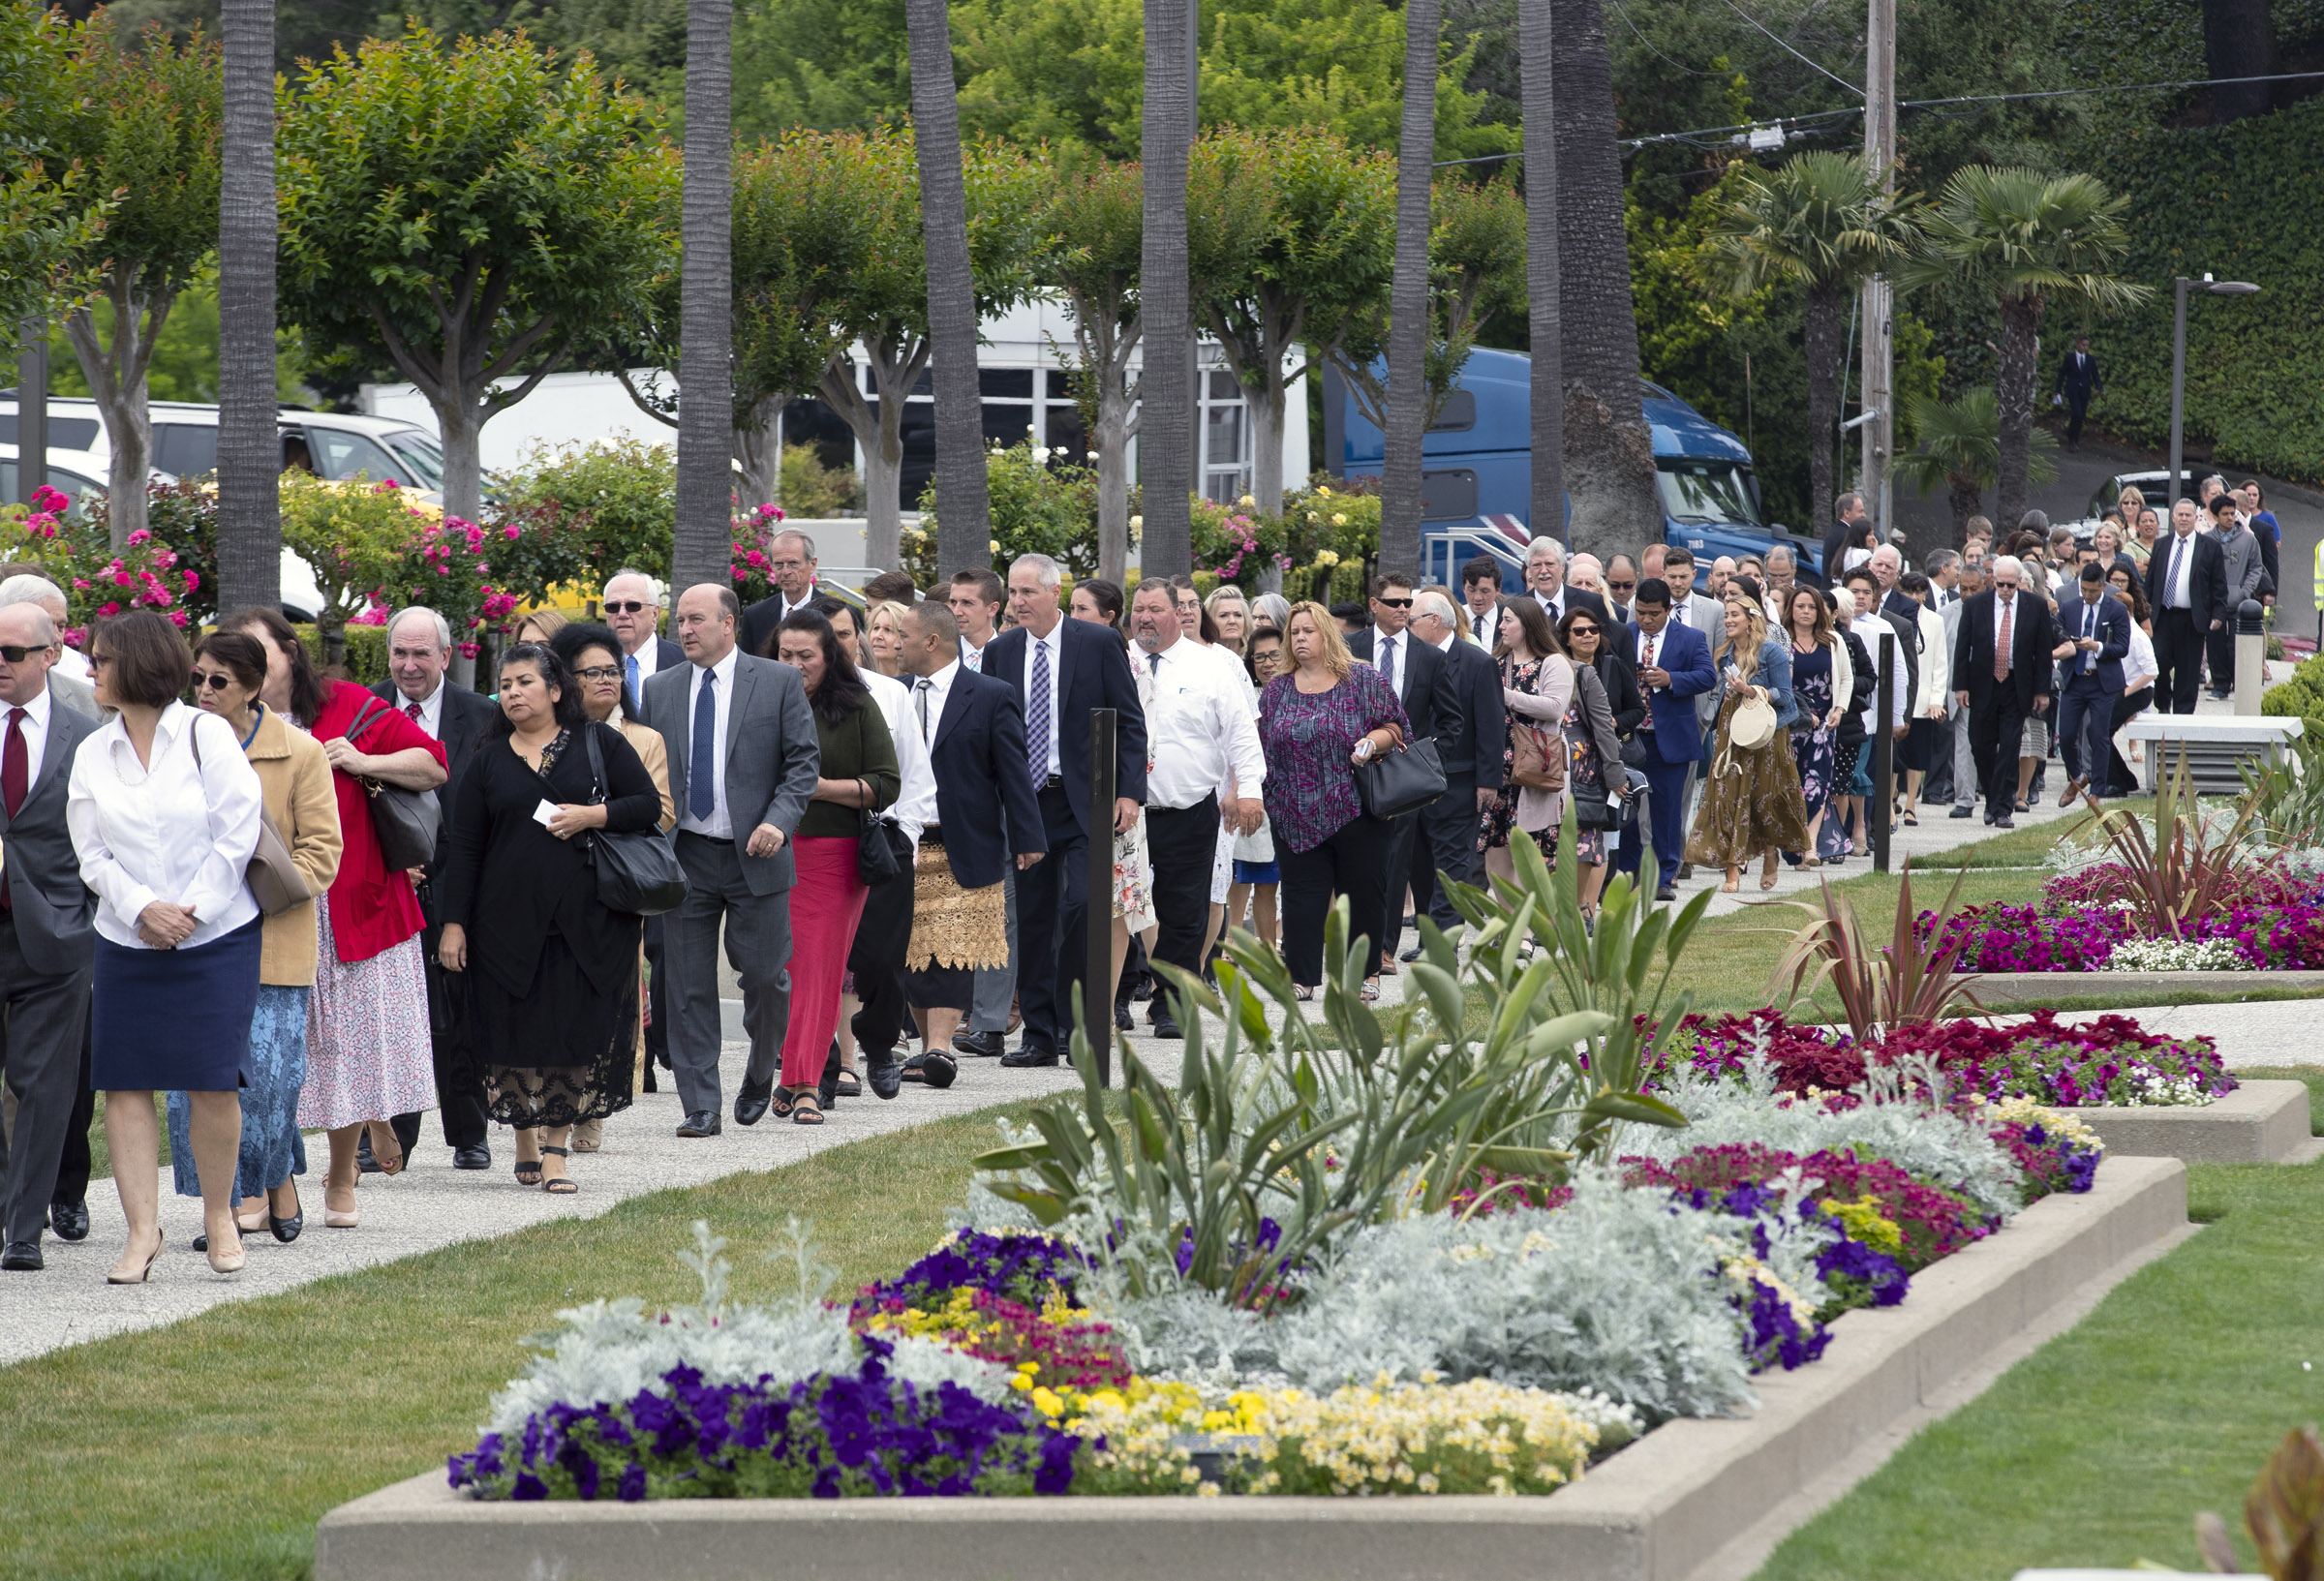 Latter-day Saints wait in line for the second session where President Dallin H. Oaks, first counselor in the First Presidency, rededicated the Oakland California Temple on Sunday, June 16, 2019.